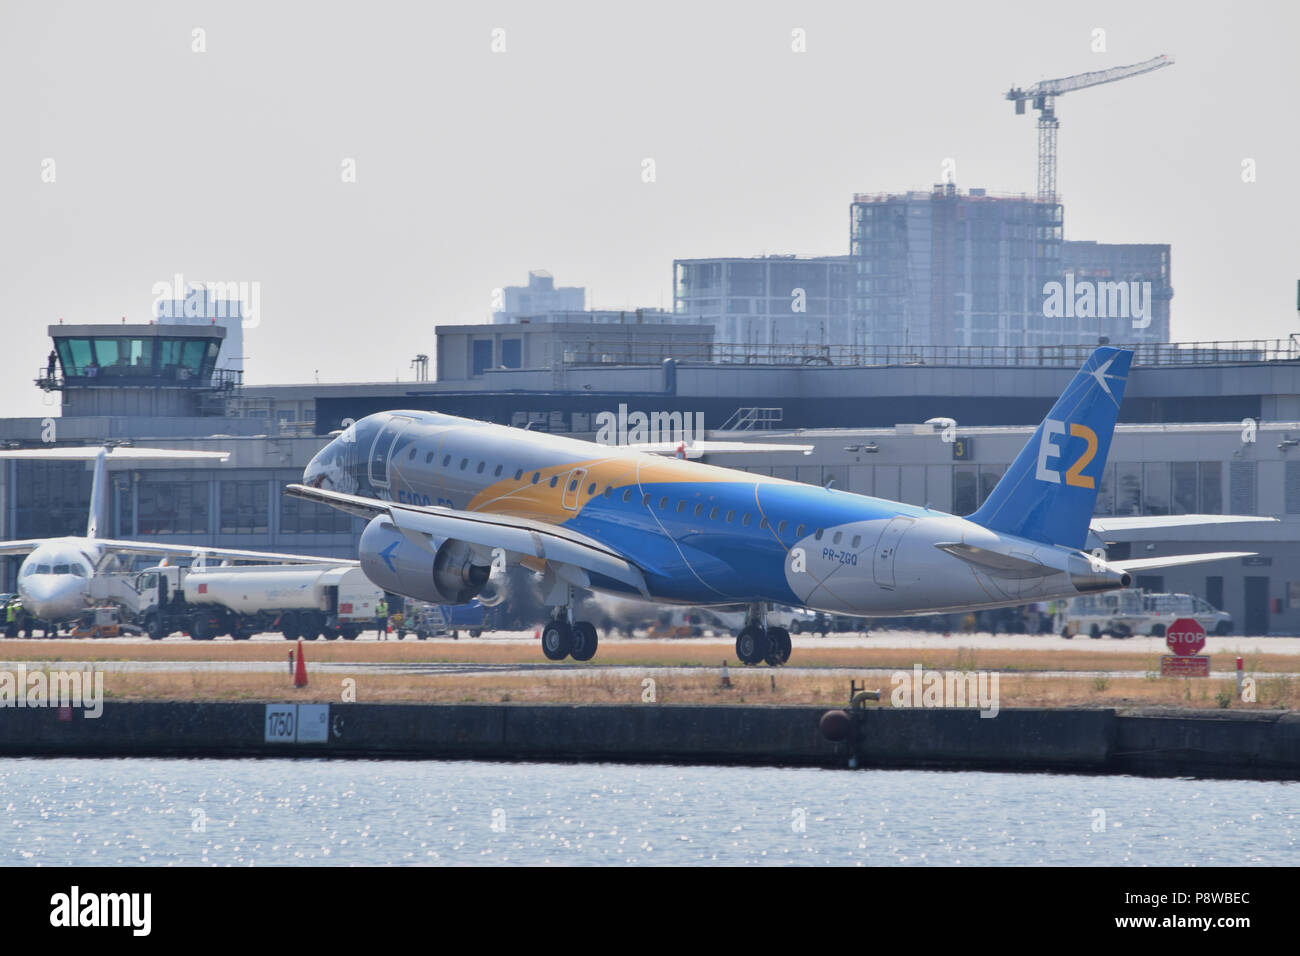 The all new Embraer E190 E2 medium range jet airliner makes its maiden arrival to London City Airport located in London's Royal Docks - Stock Image